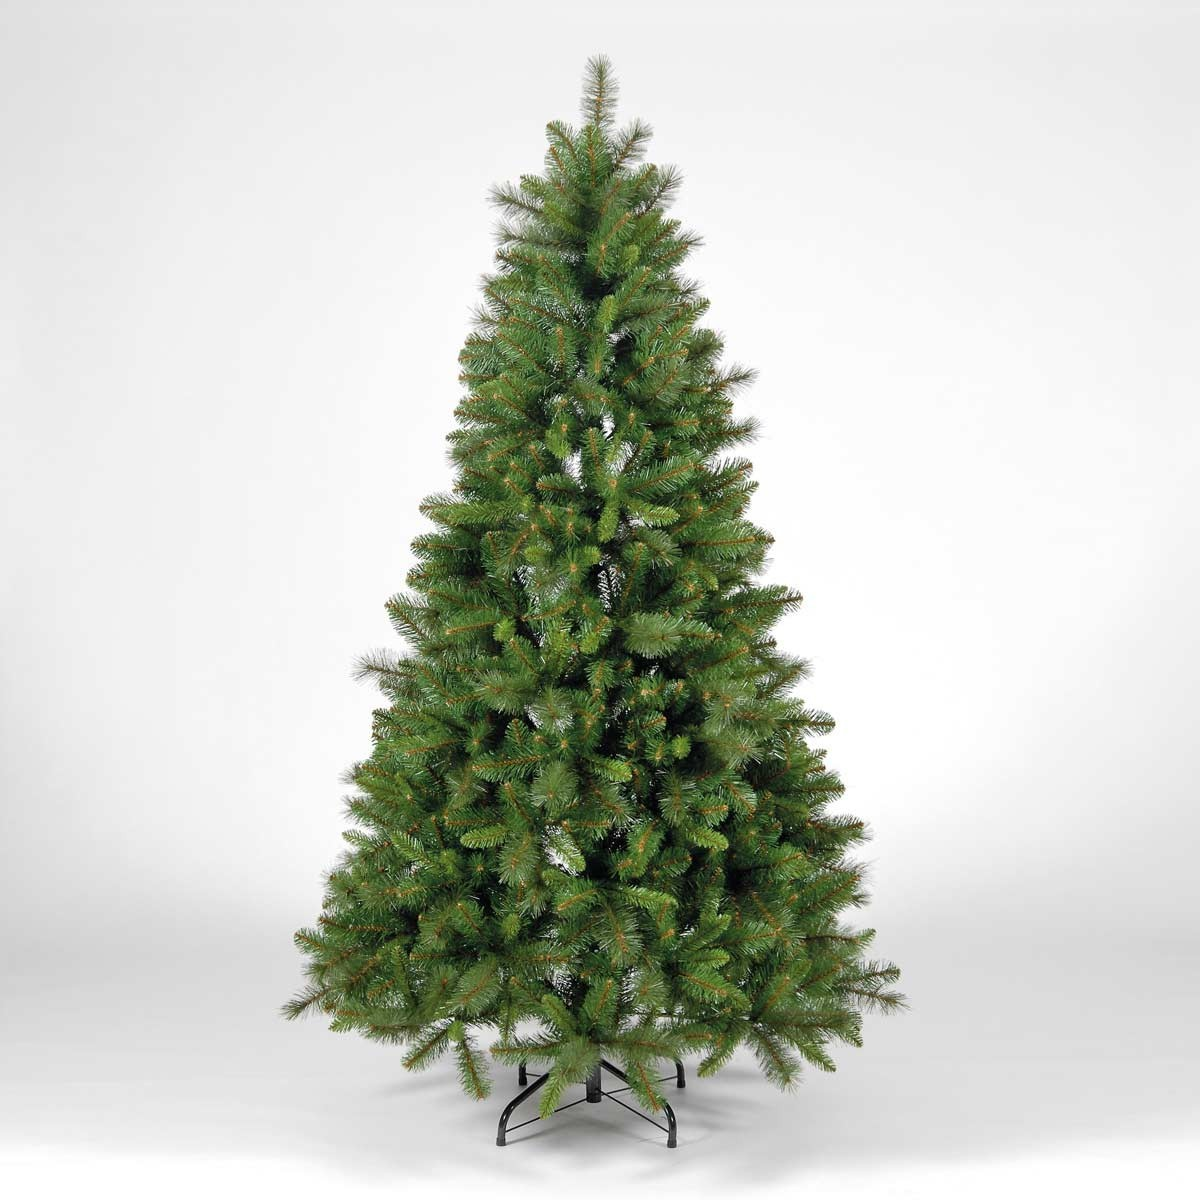 Pine Christmas Tree With Lights & Ornaments - Easy To Assemble (12 Feet)